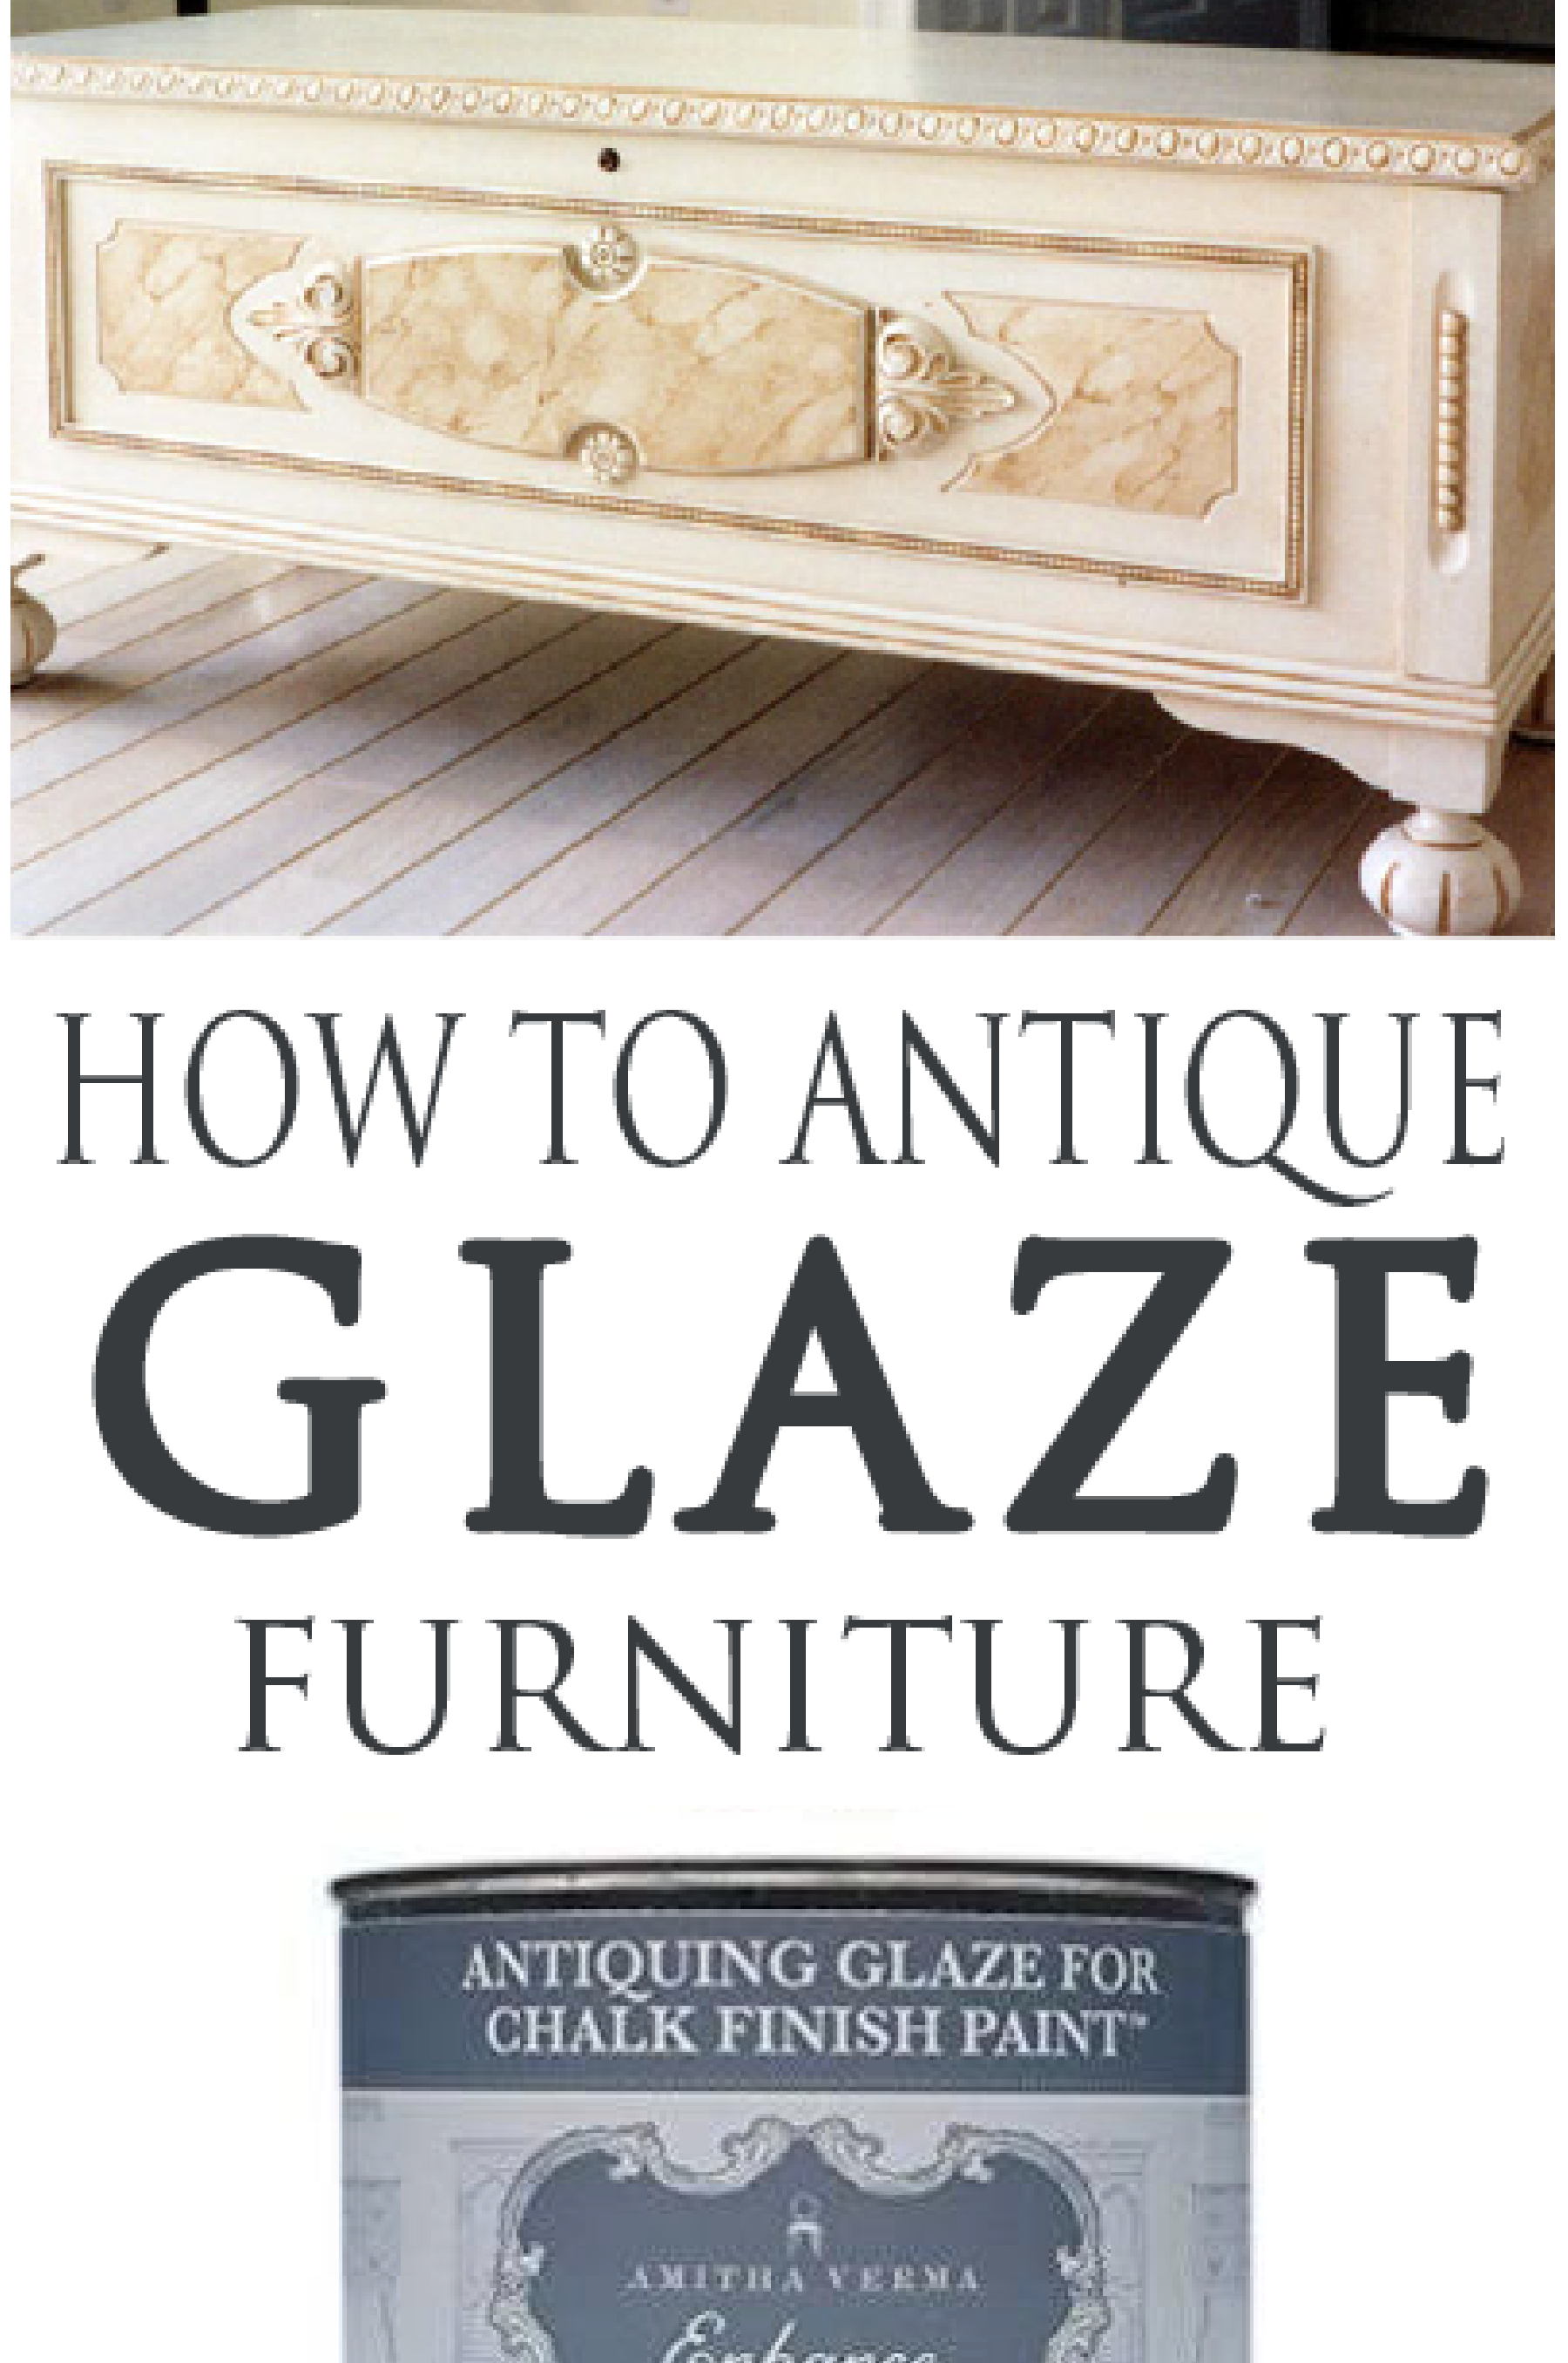 how to do an antique glaze on painted furniture painted furniture ideas. Black Bedroom Furniture Sets. Home Design Ideas